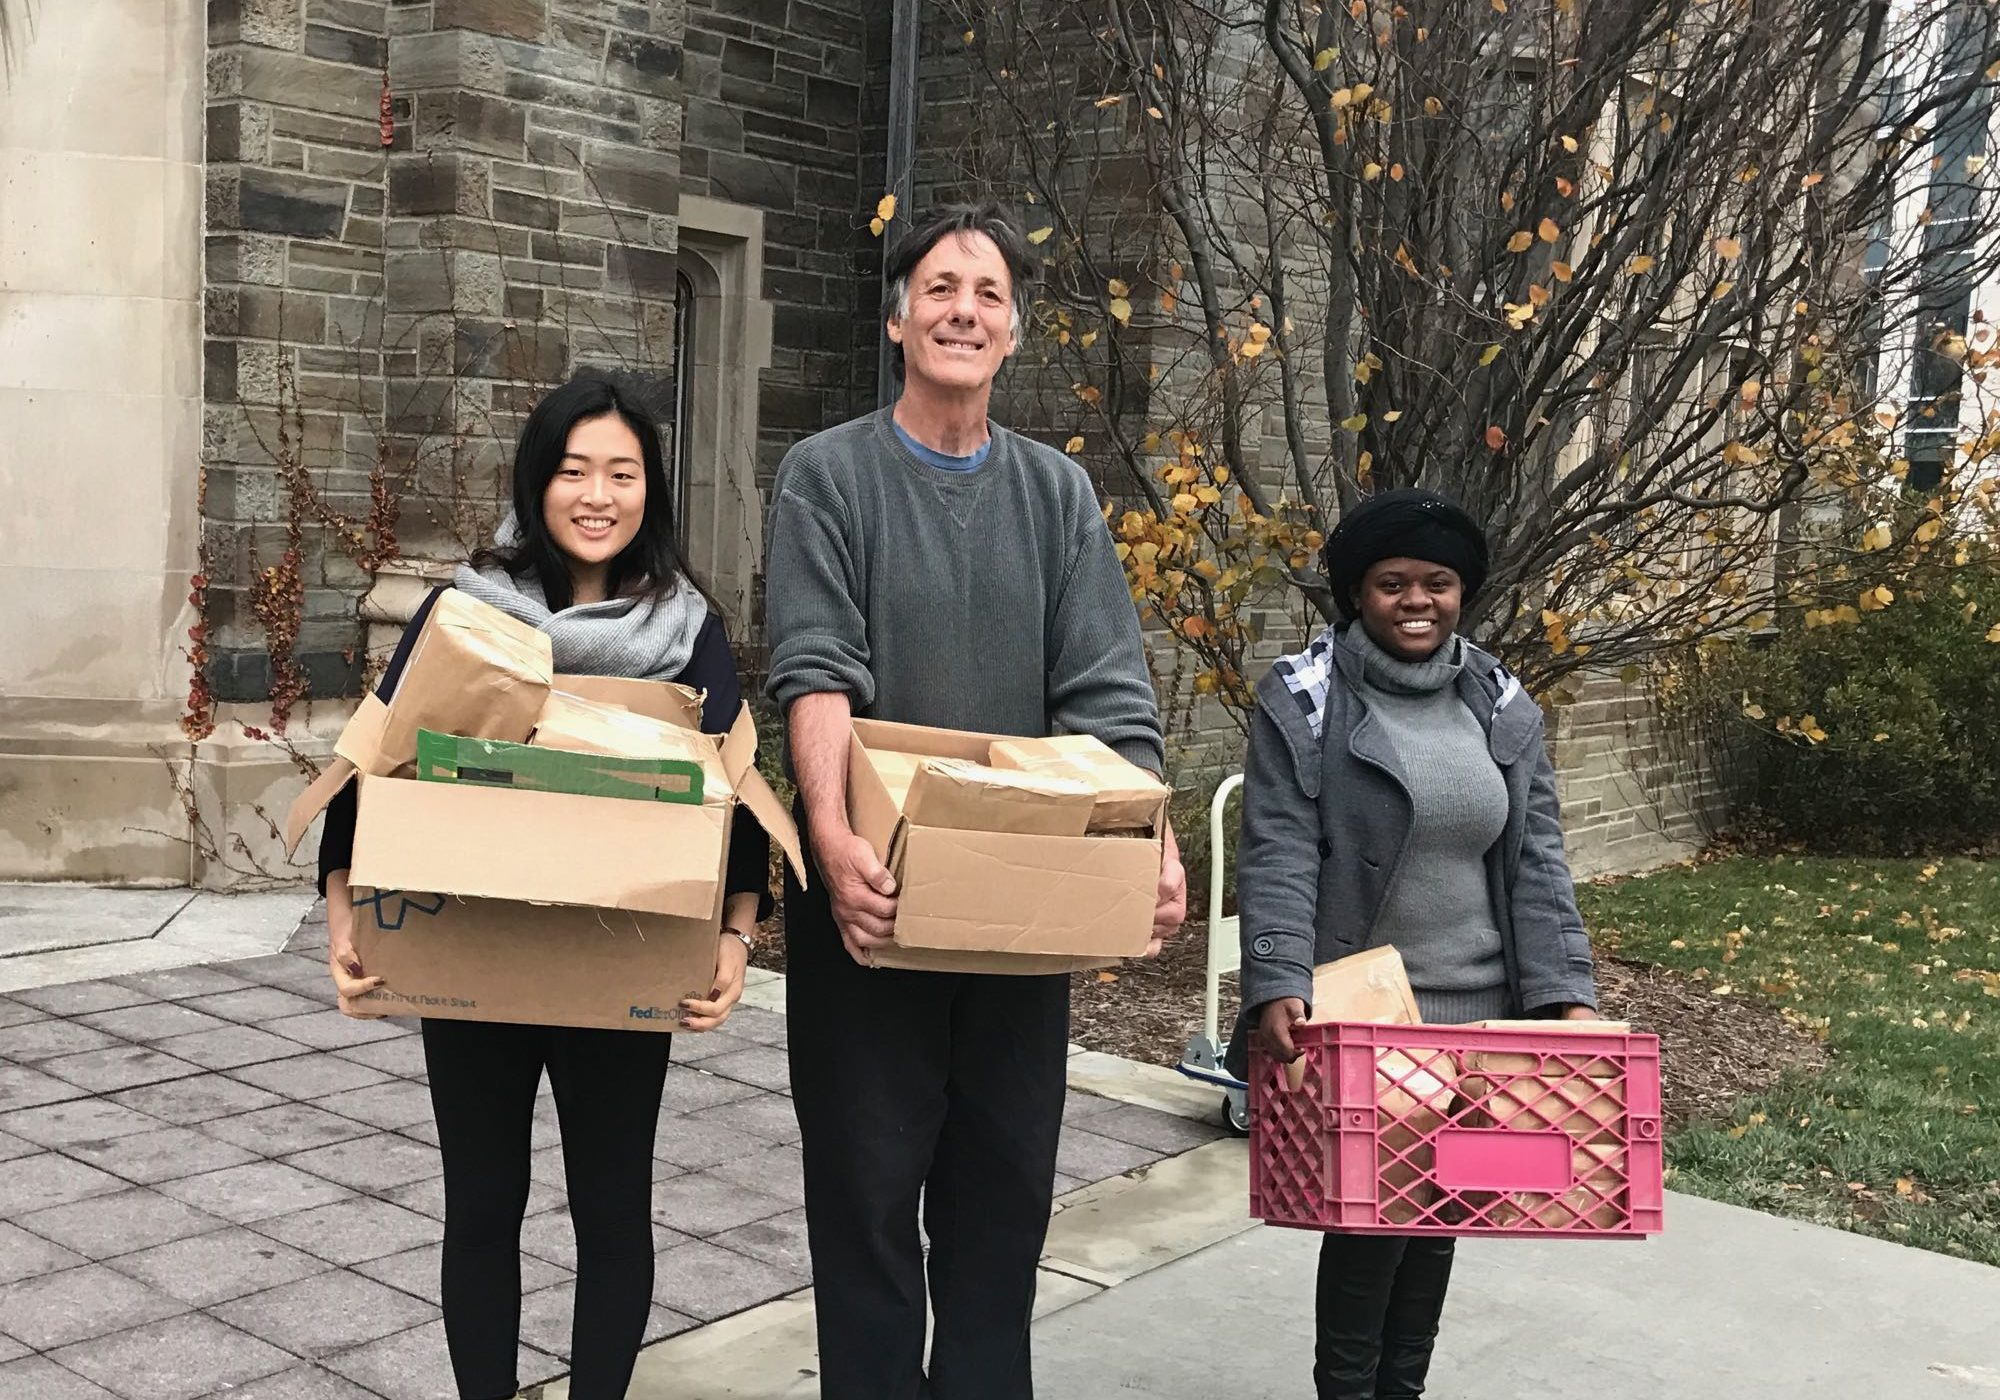 Clara, Gary, Yvette bringing packages to the post office